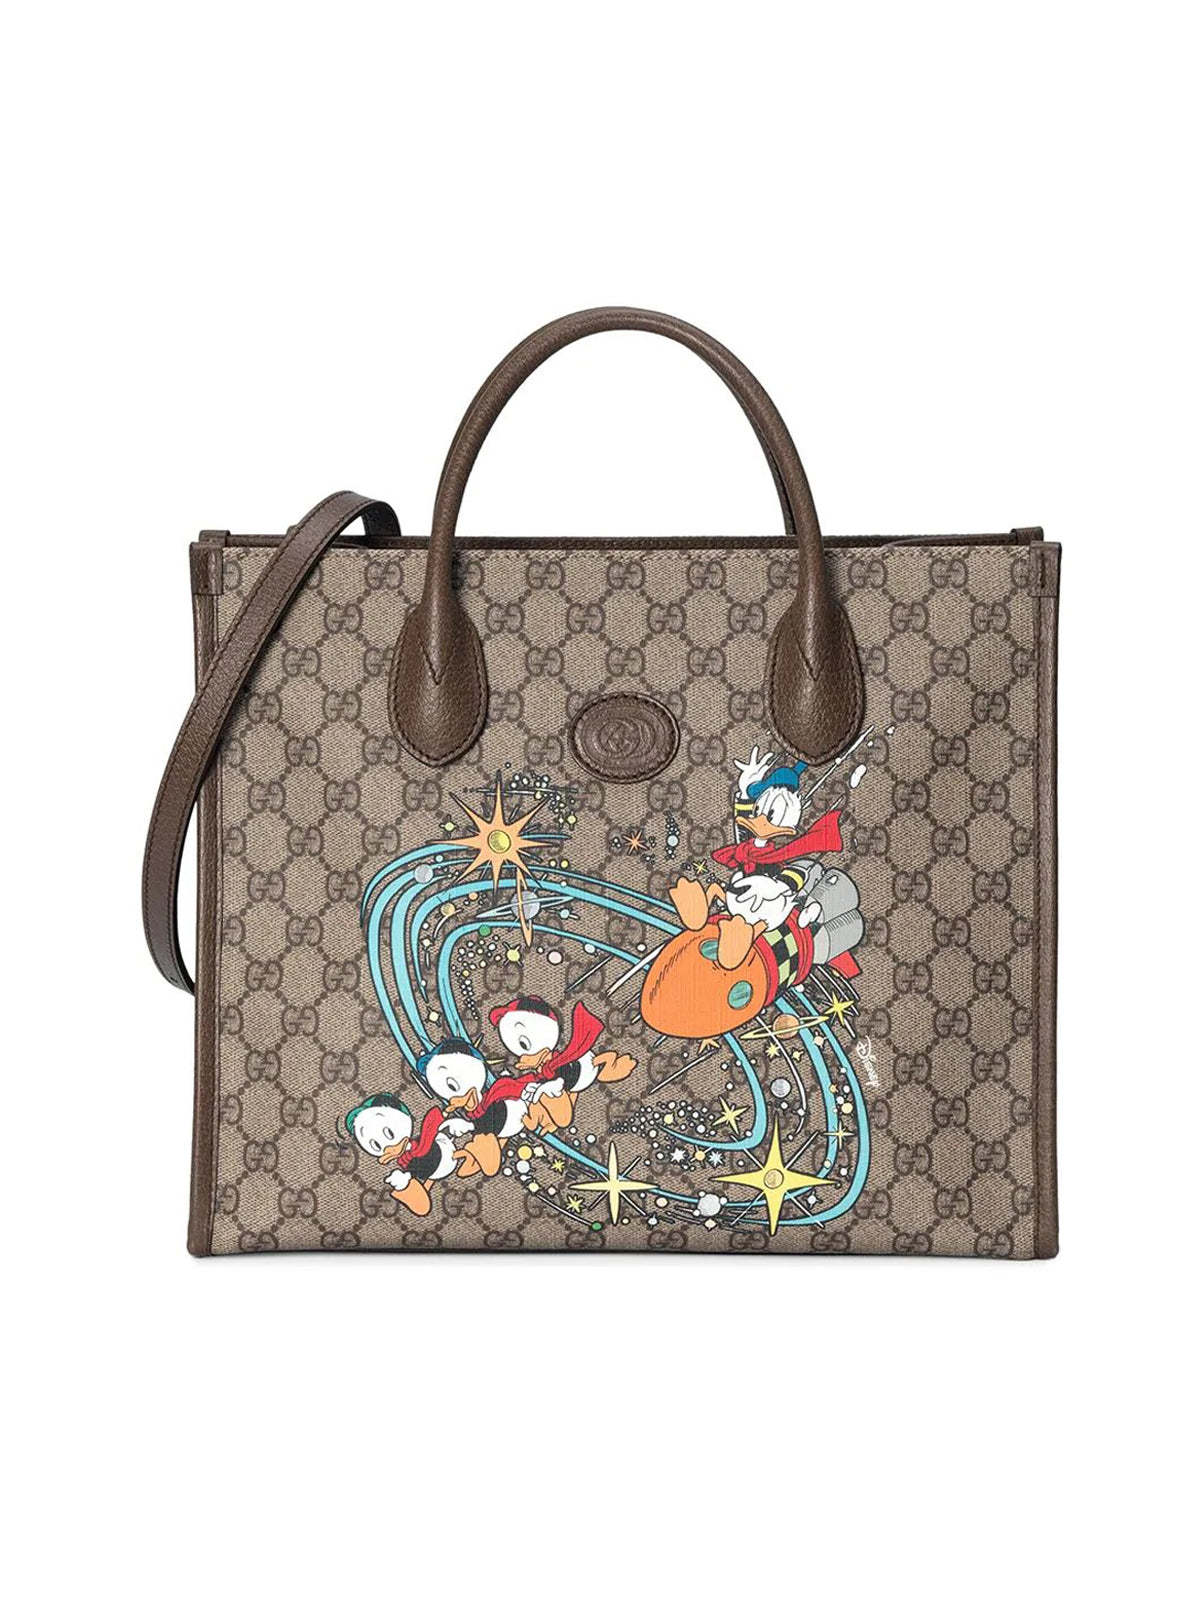 Borsa tote Donald Duck Gucci X Disney